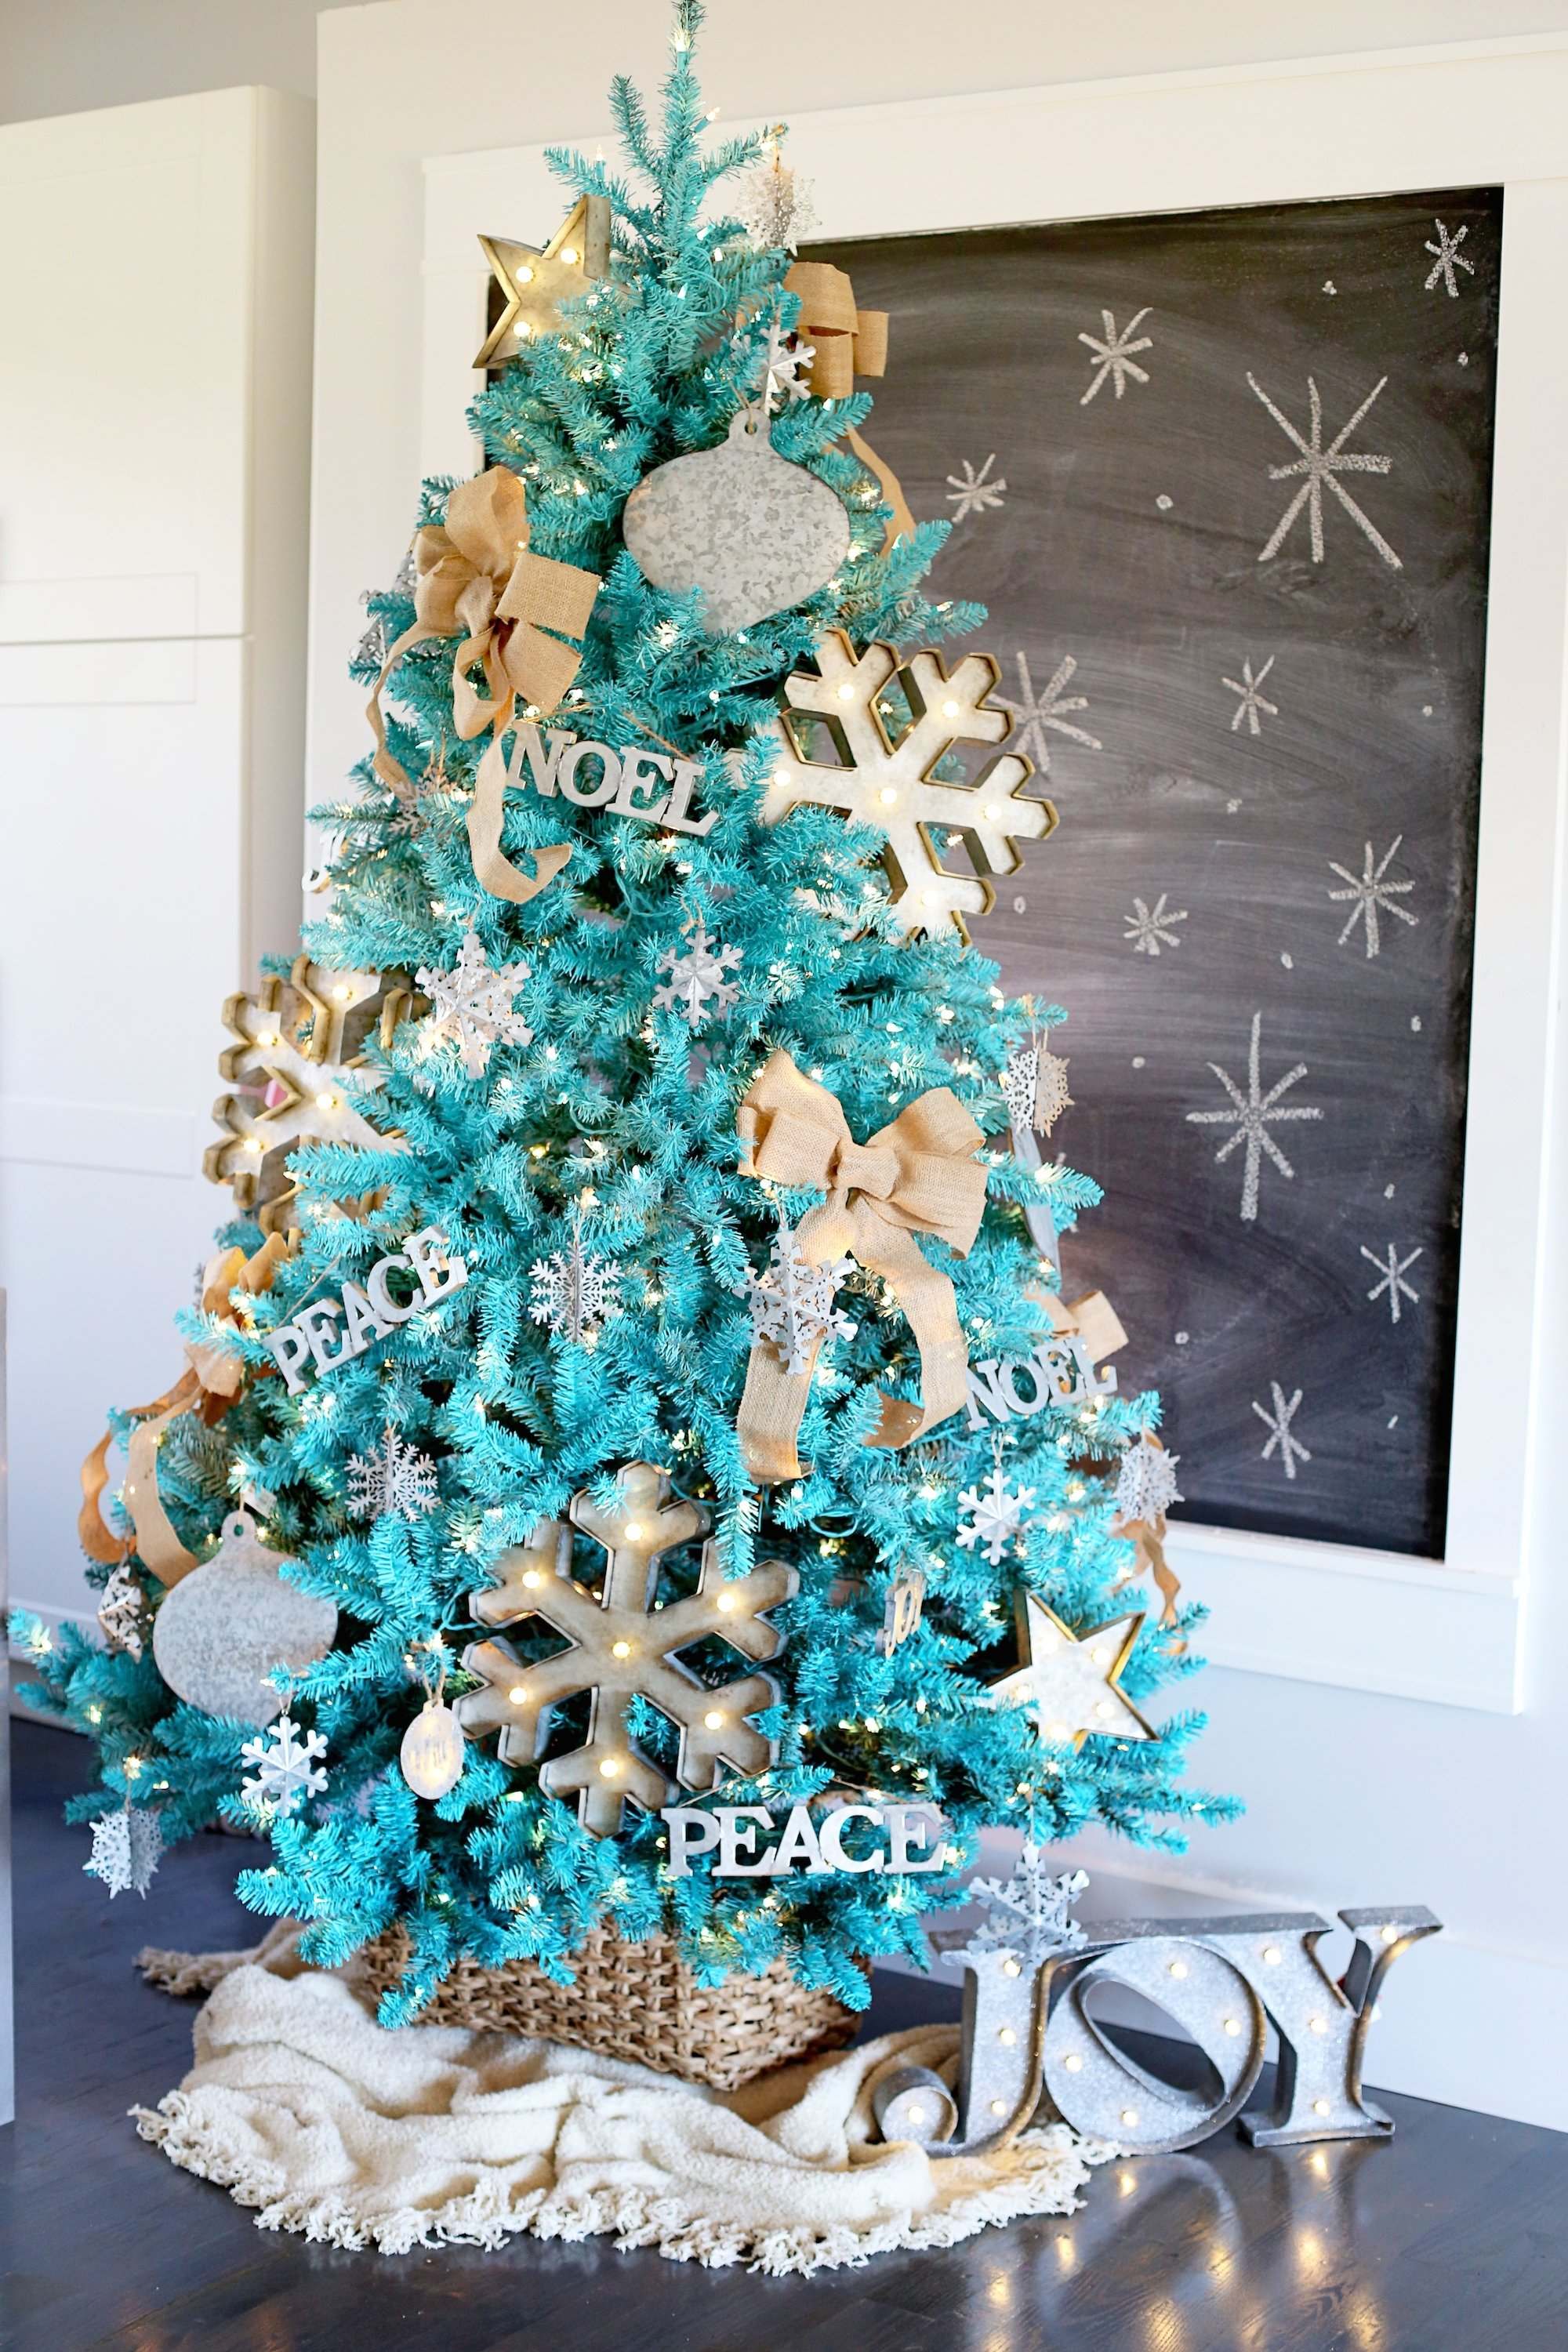 10 Perfect Modern Christmas Tree Decorating Ideas modern christmas tree decor furniture design modern christmas tree 2020